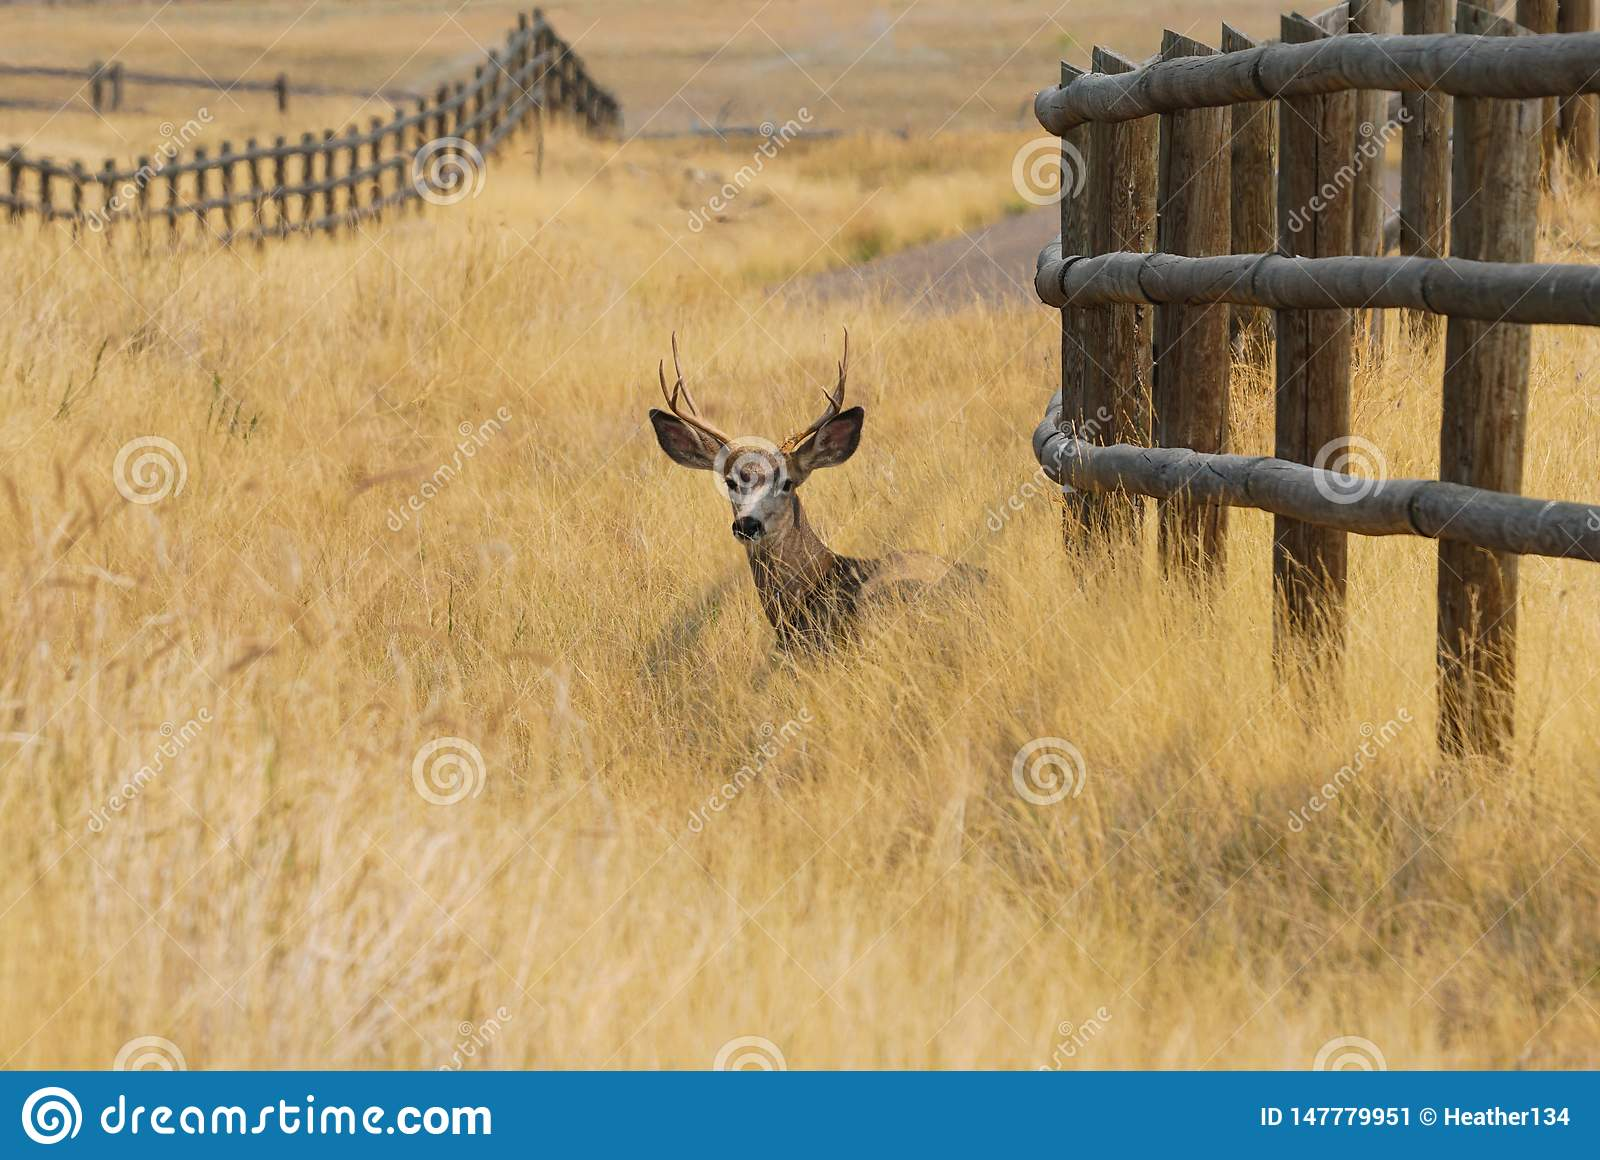 A Buck Resting in the Autumn Grass